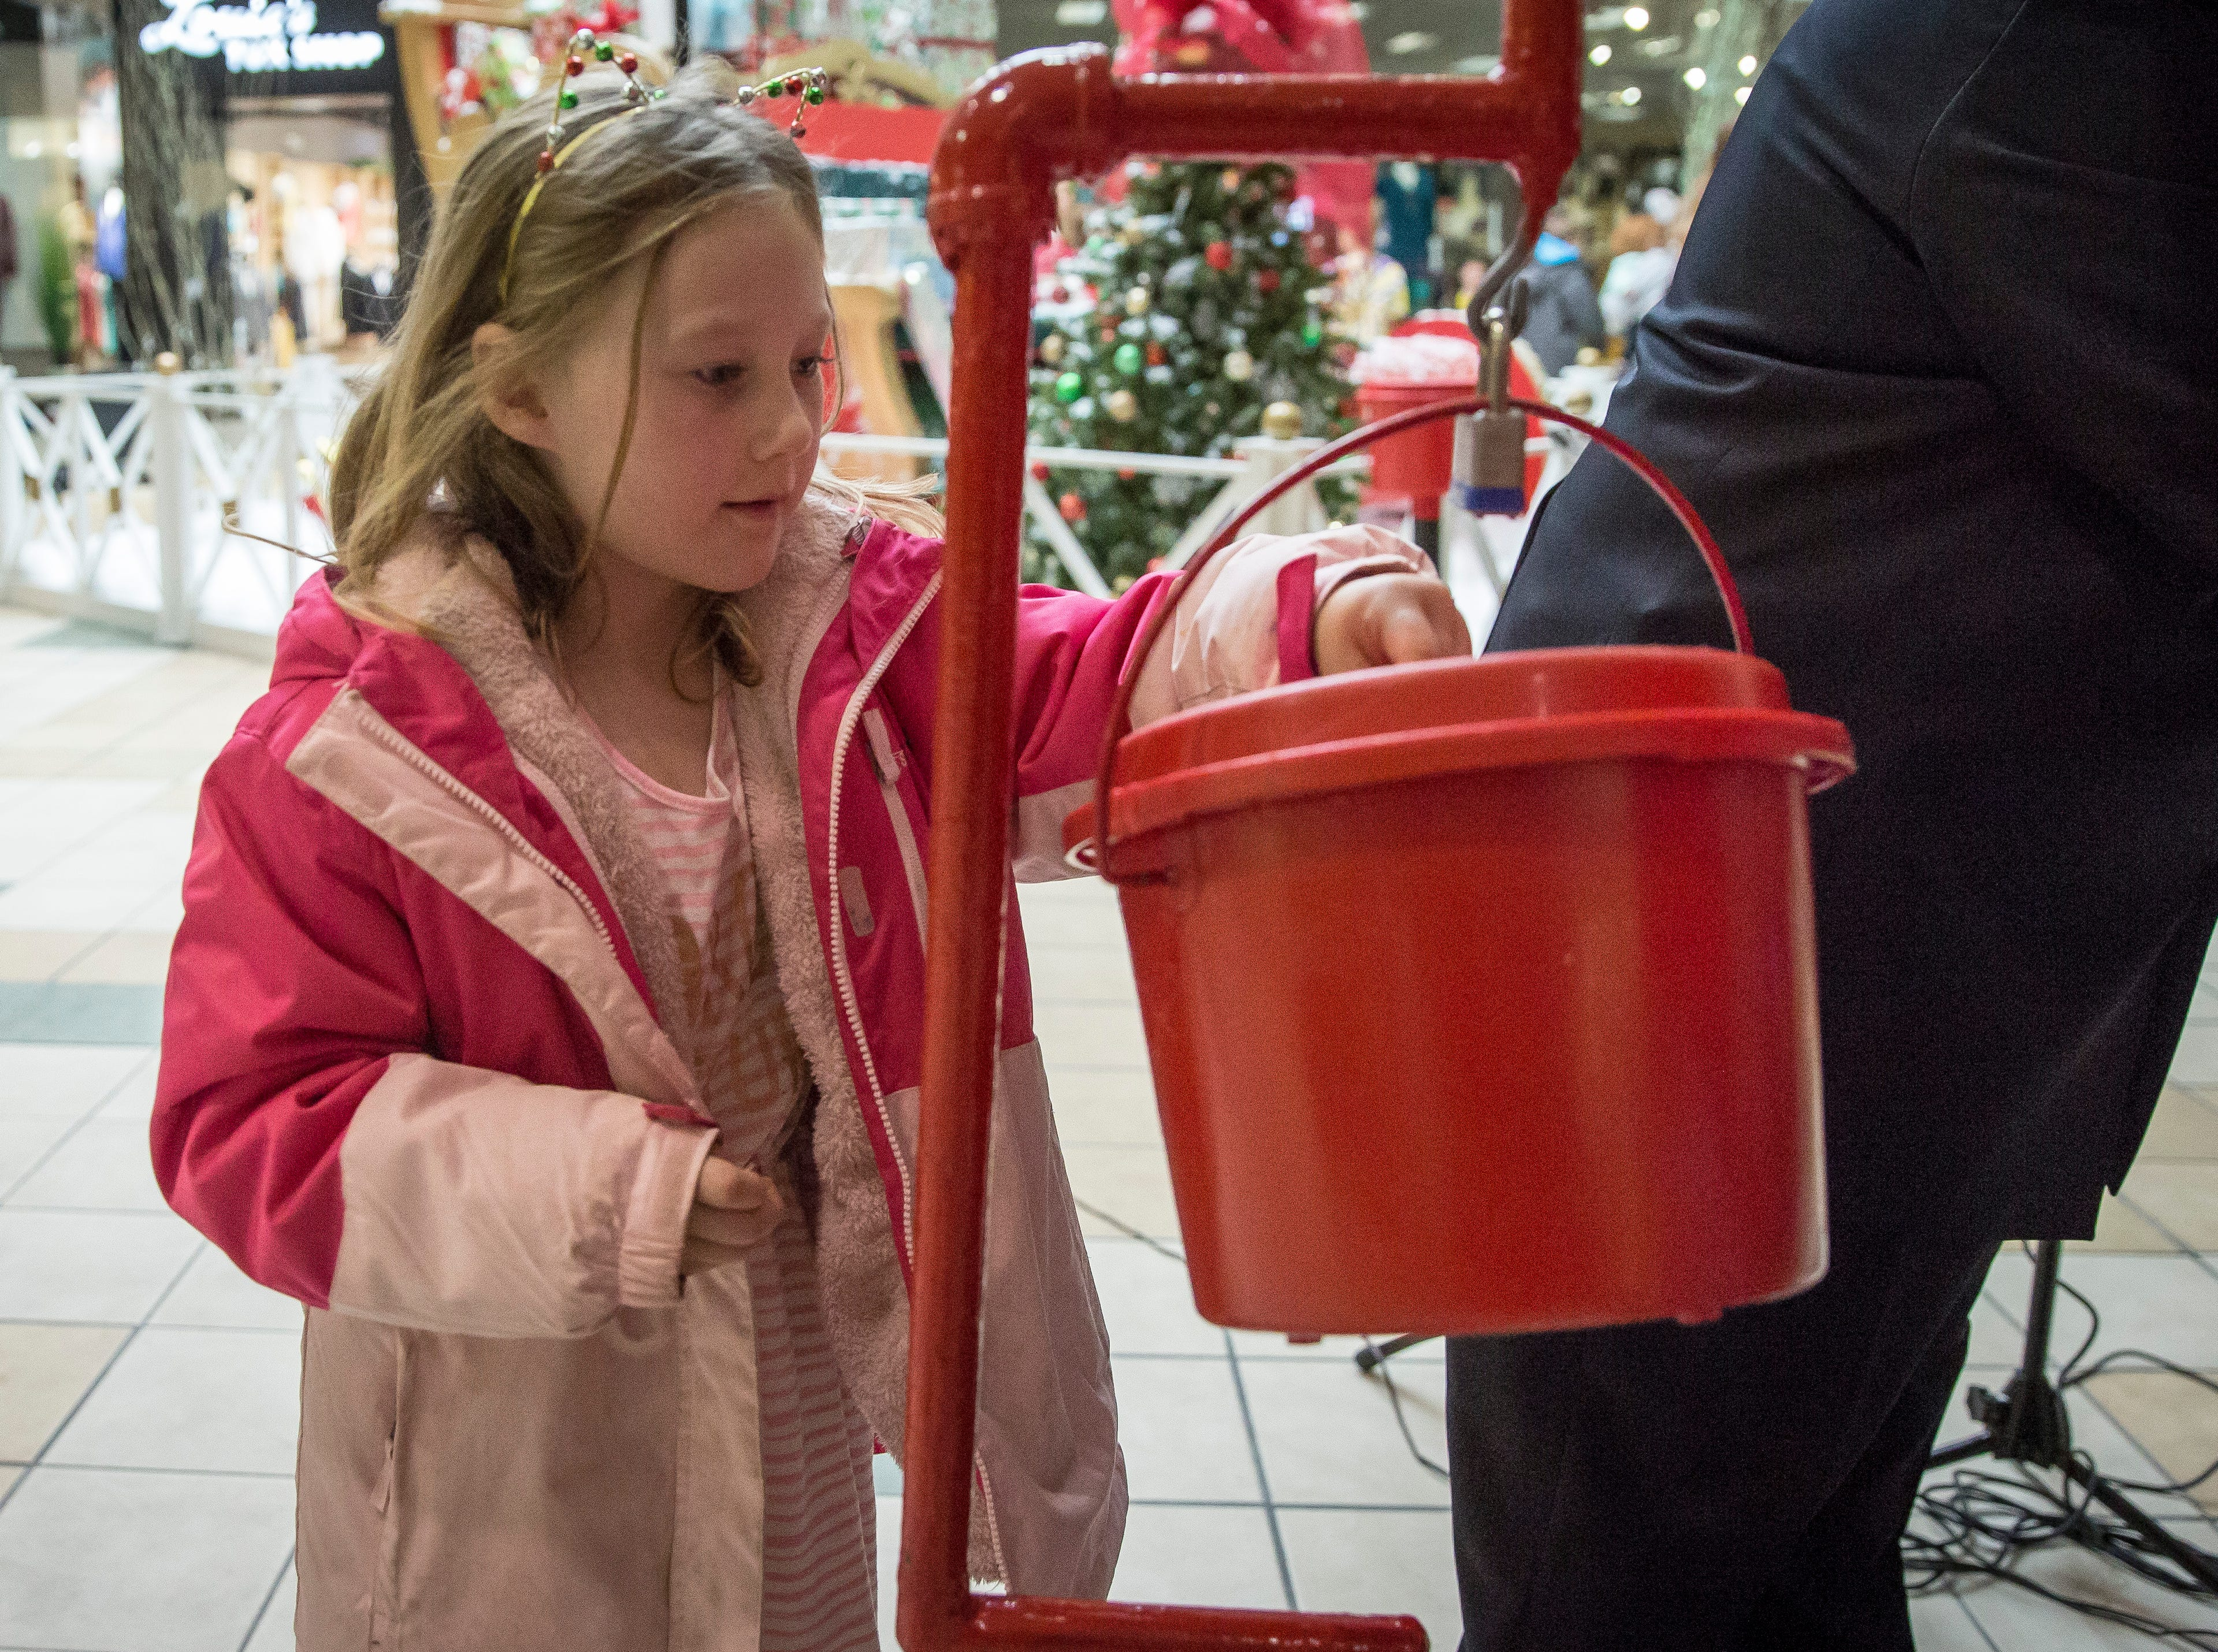 Children help put money inside the red kettles after the Salvation Army's Red Kettle Campaign Kickoff at the Muncie Mall. The long time tradition of bell ringers outside shopping centers is just one way to donate to the organization.